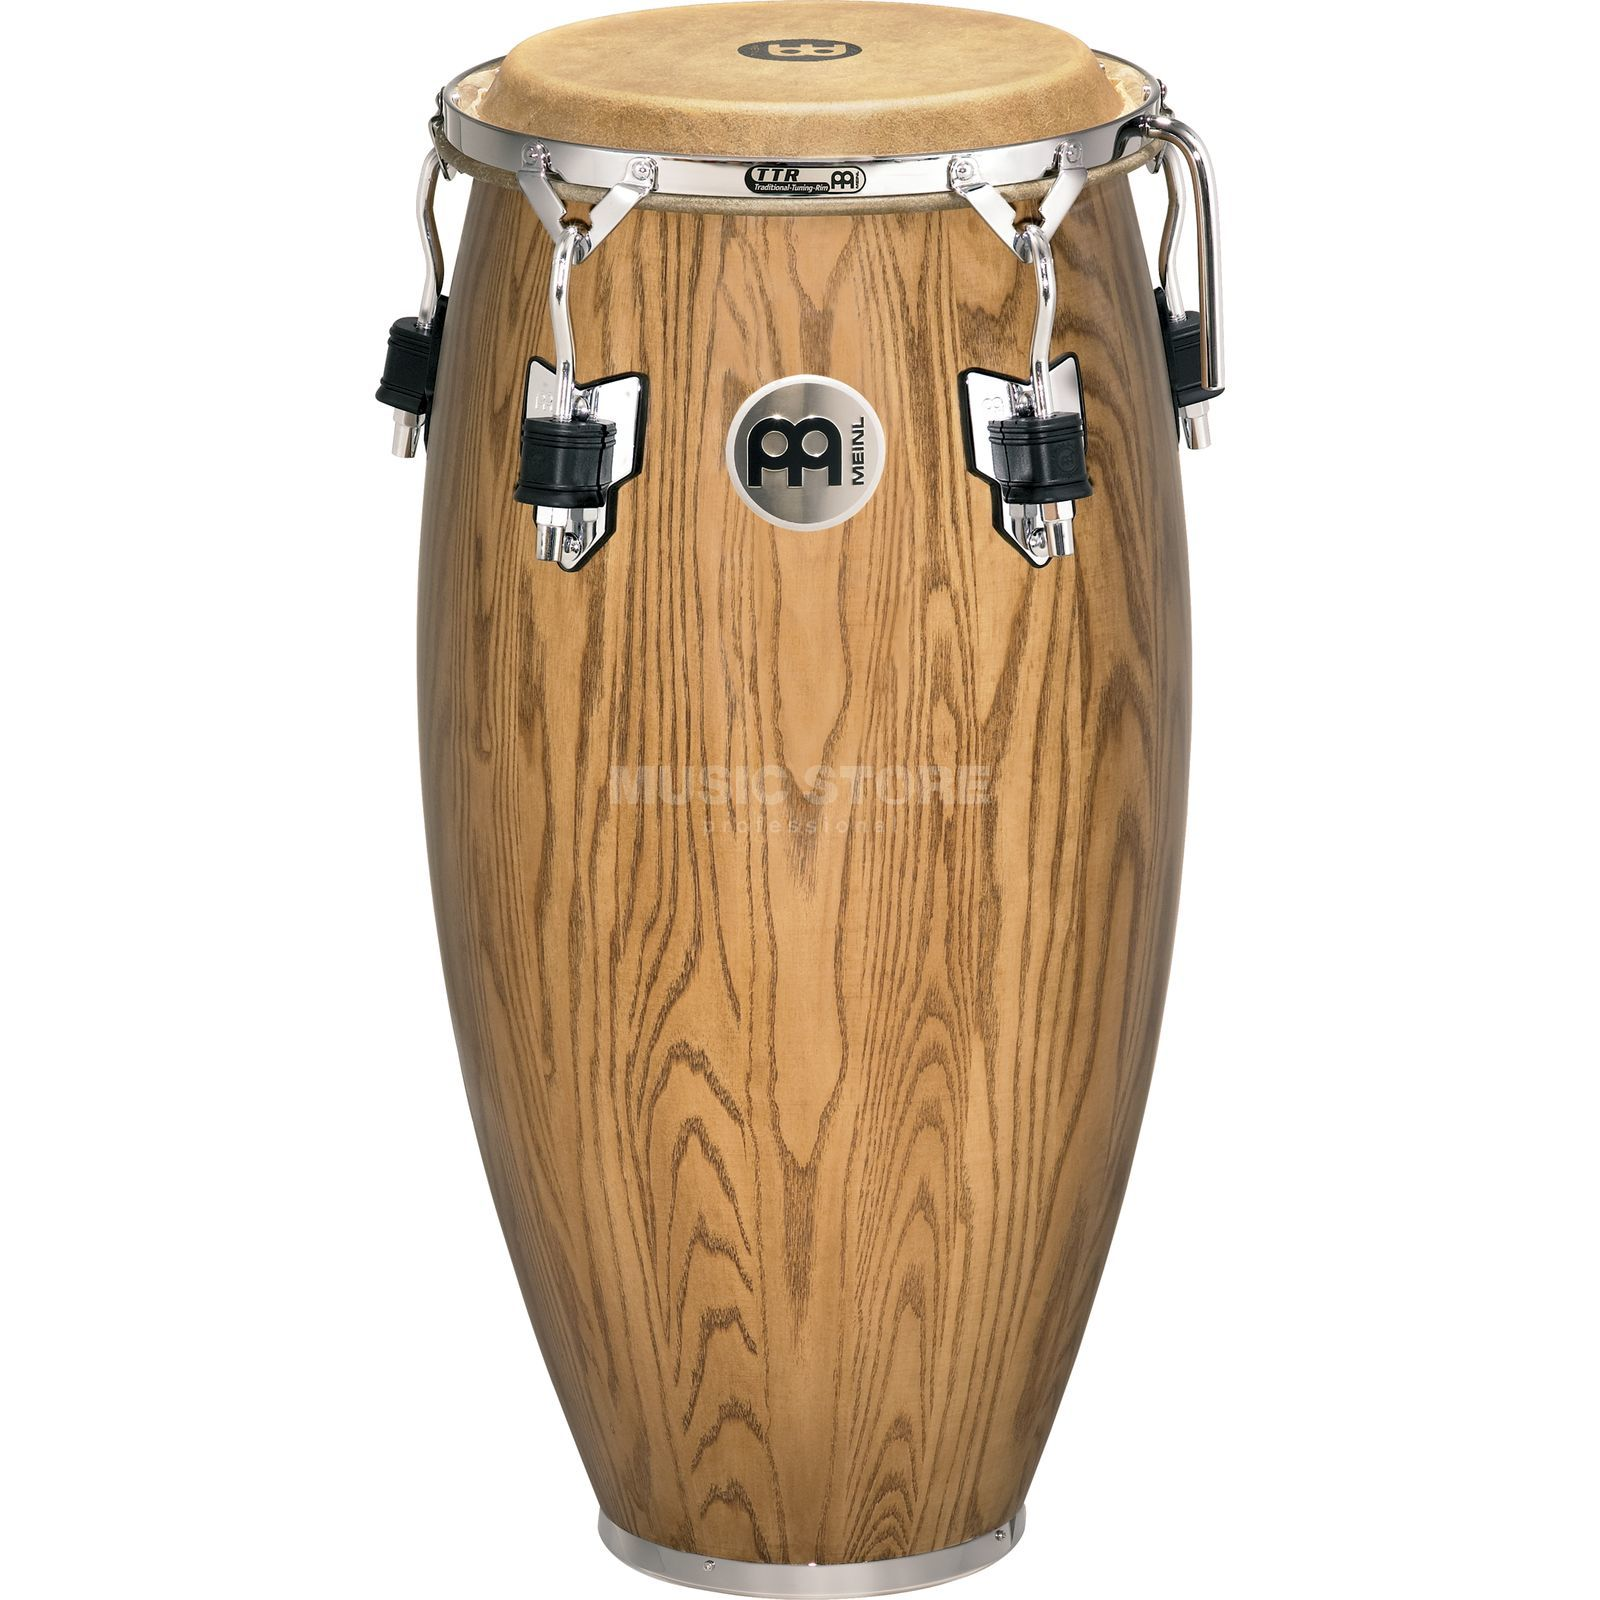 "Meinl Woodcraft Conga WC11ZFA-M, 11"" Quinto, Zebra Finished Ash Product Image"